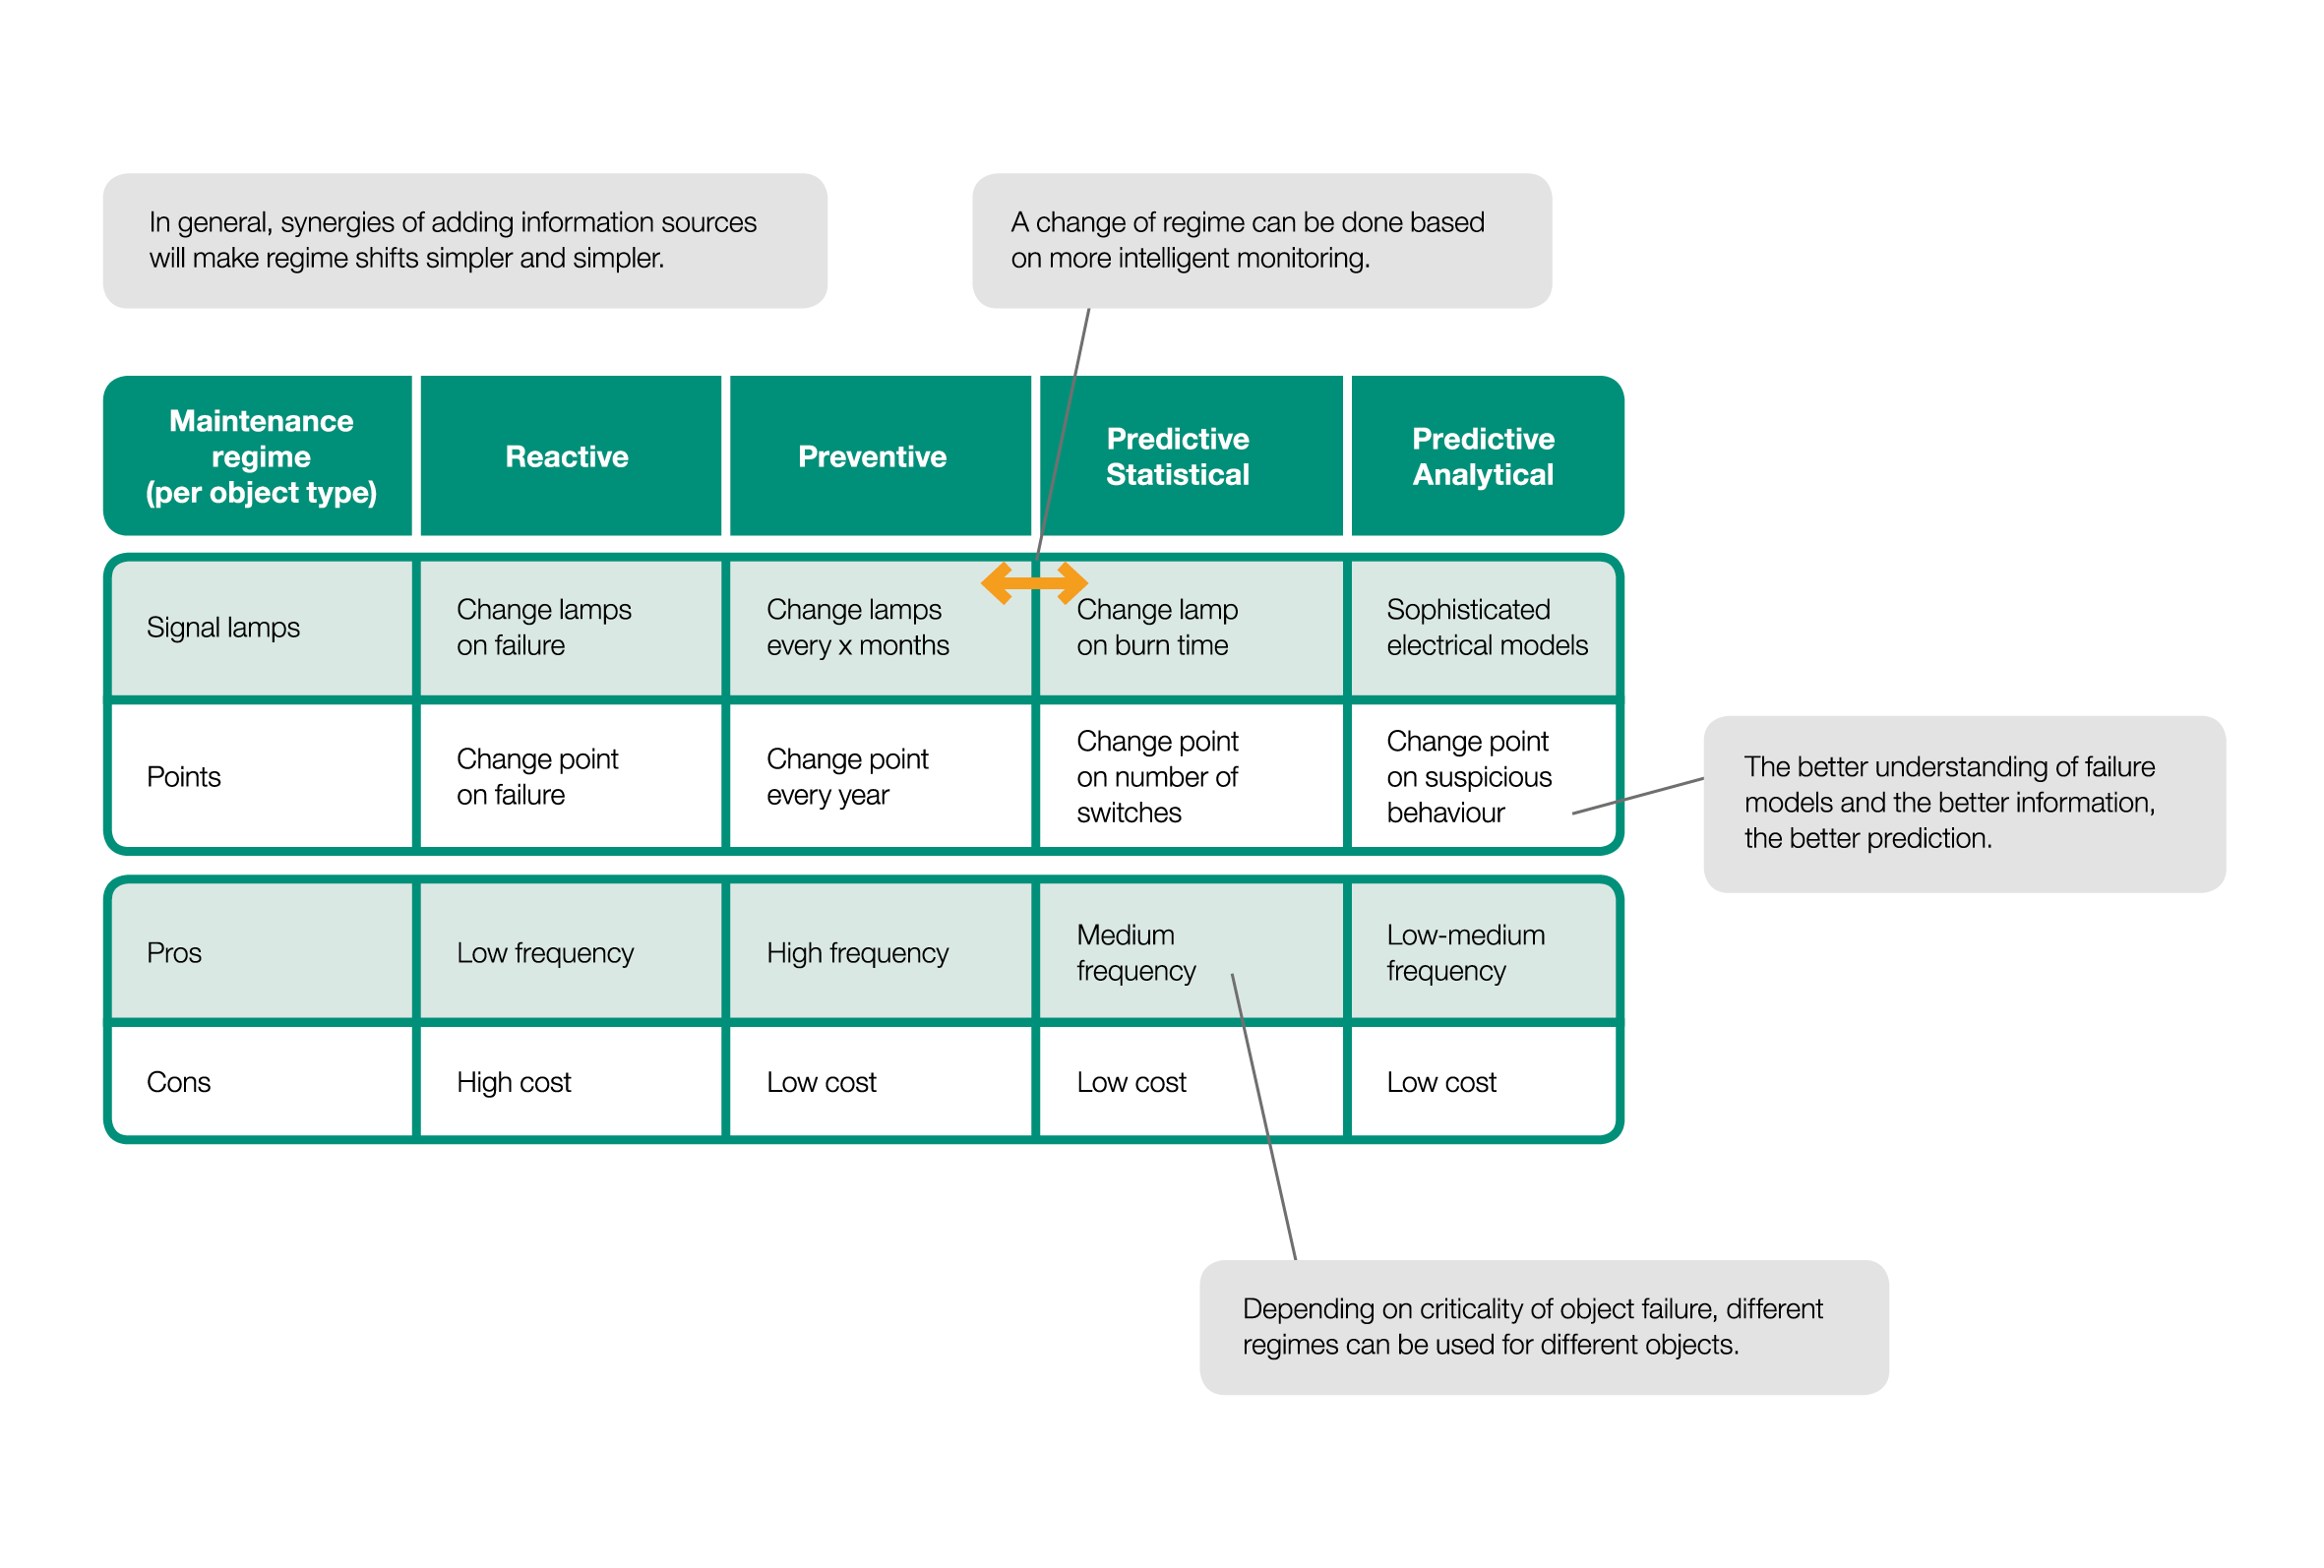 A principle illustration of possibilities in maintenance activities by applying analytics.